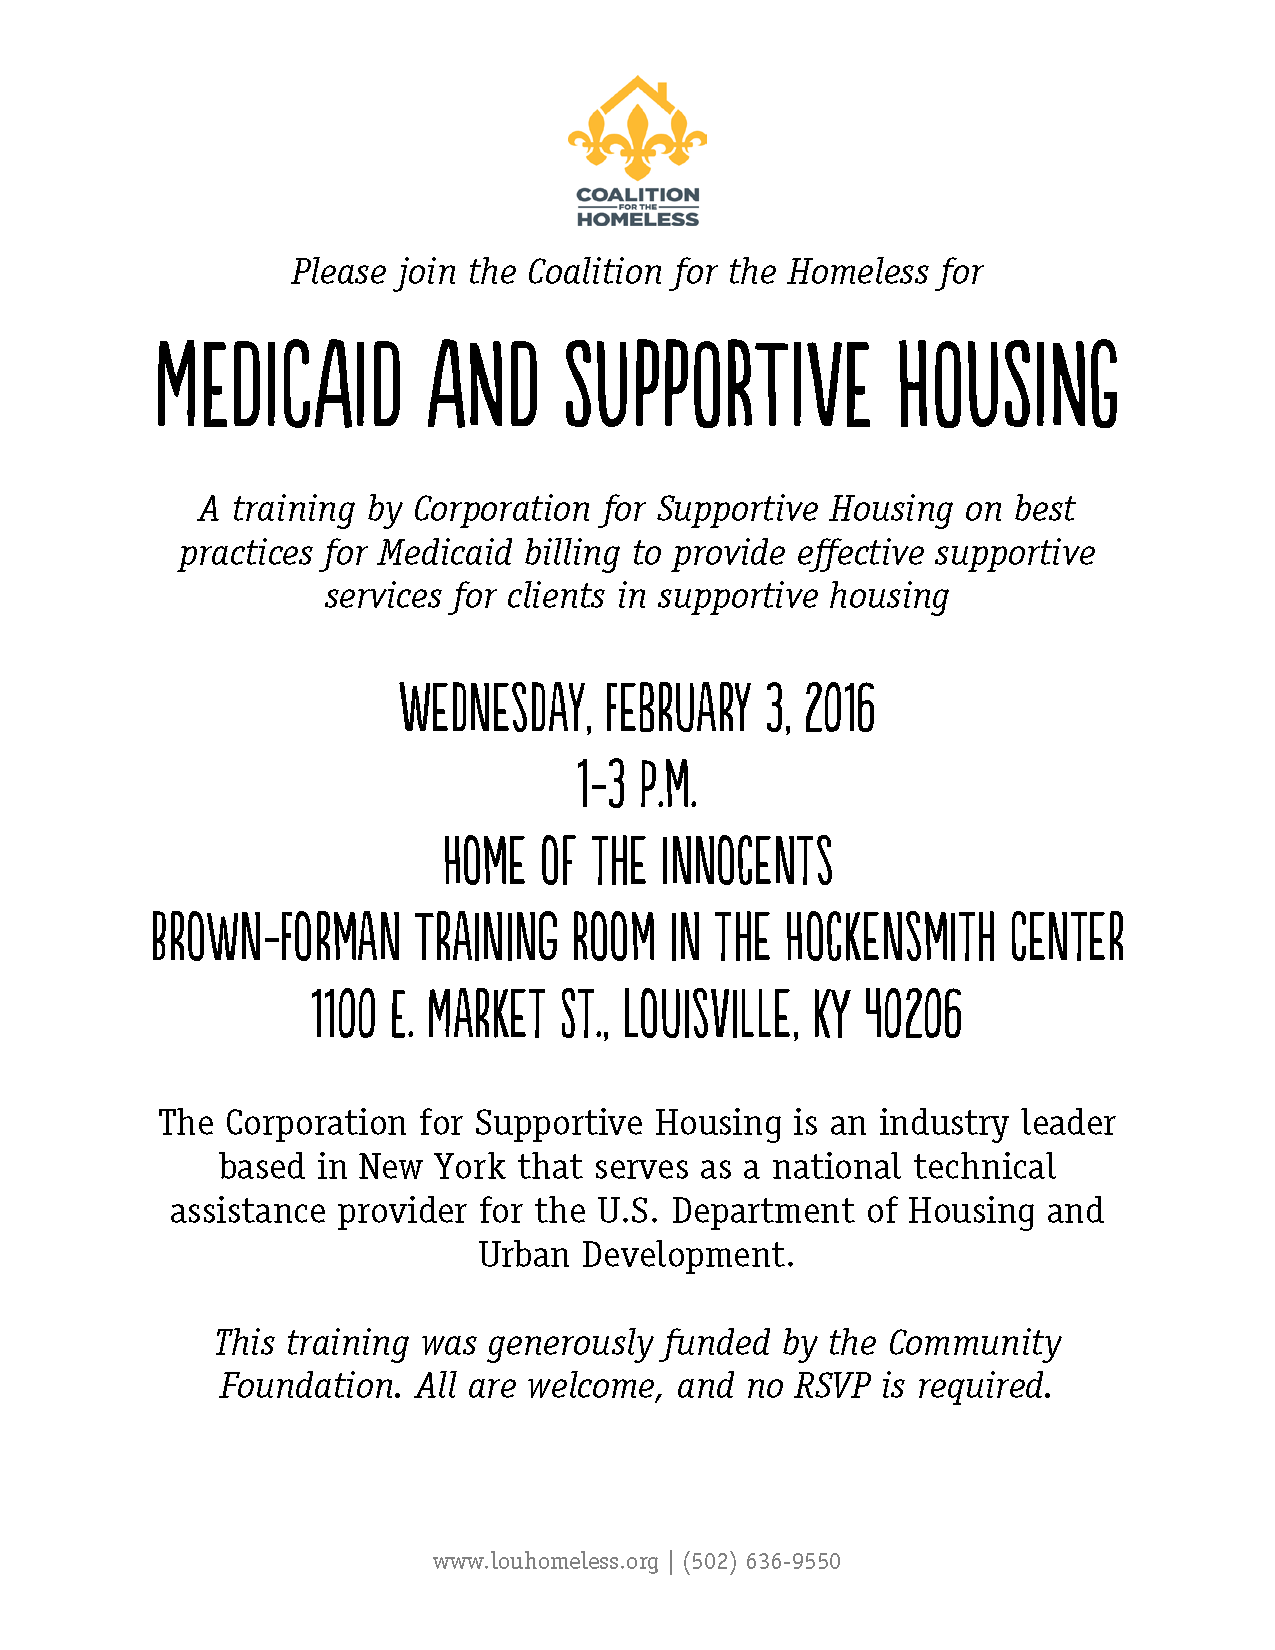 Medicaid and Supportive Housing - reschedule